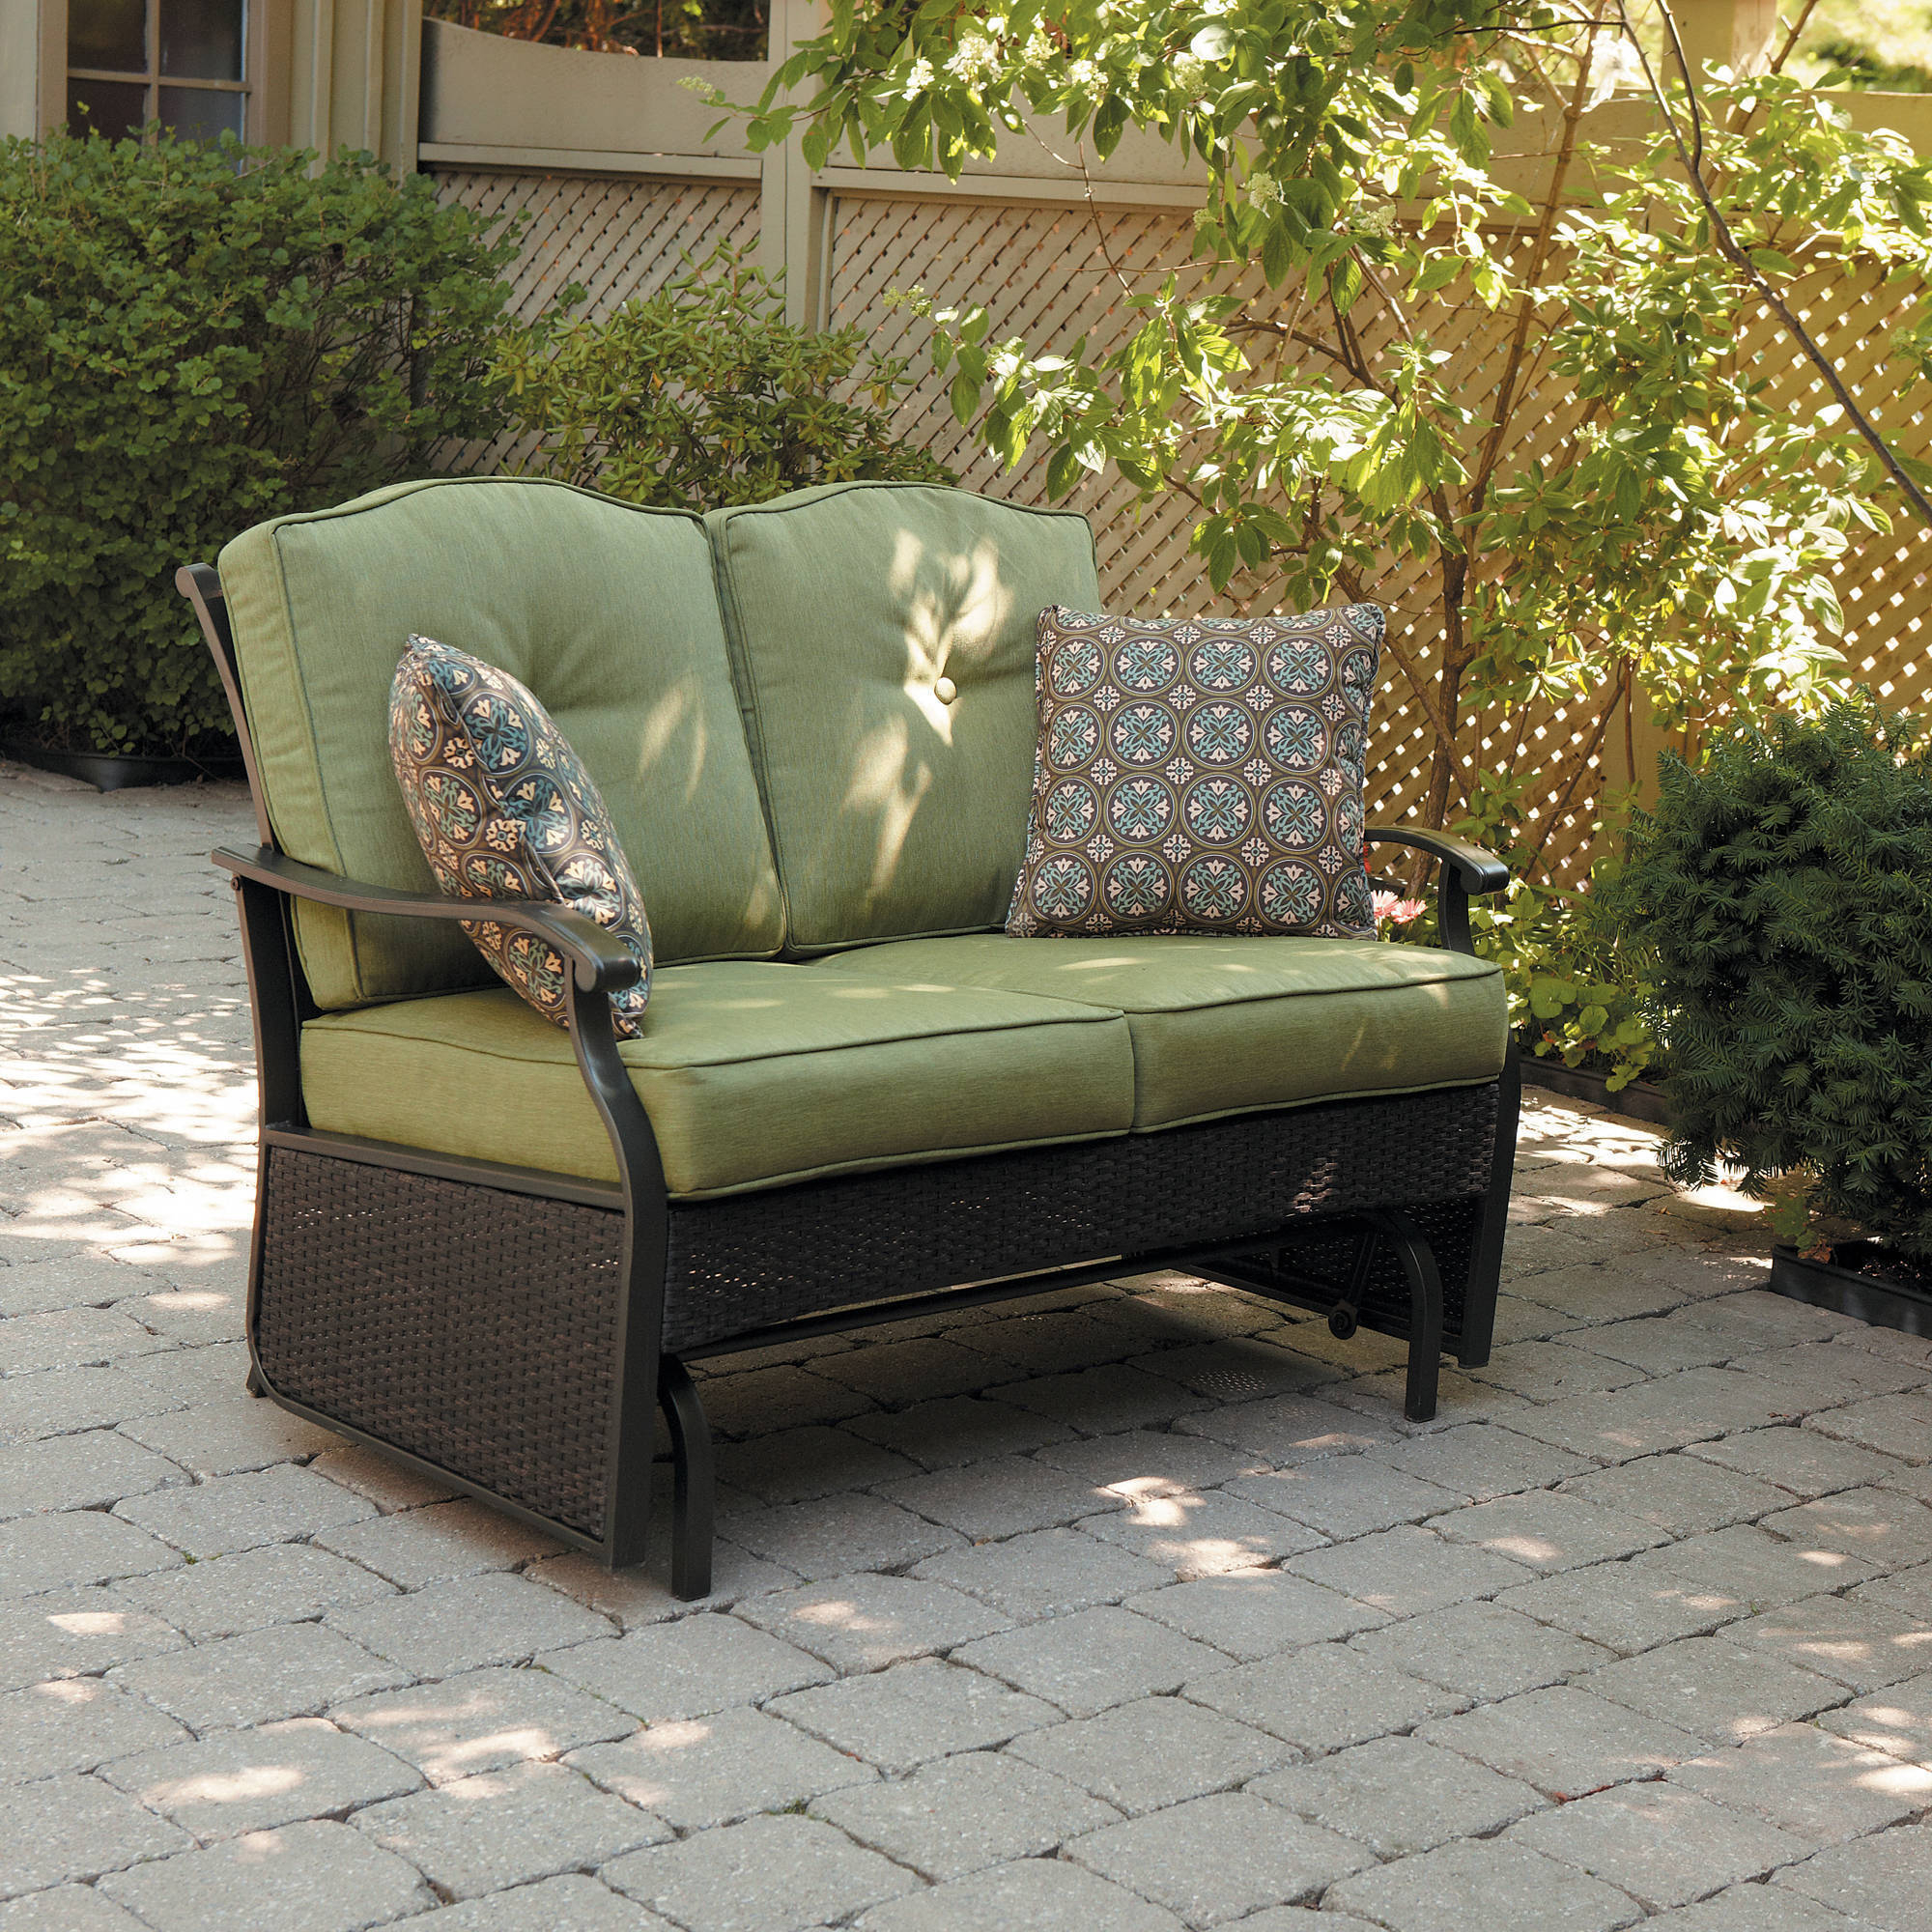 2 Person Natural Cedar Wood Outdoor Gliders Throughout 2020 Better Homes & Gardens Providence 2 Person Outdoor Glider Loveseat – Walmart (View 6 of 25)